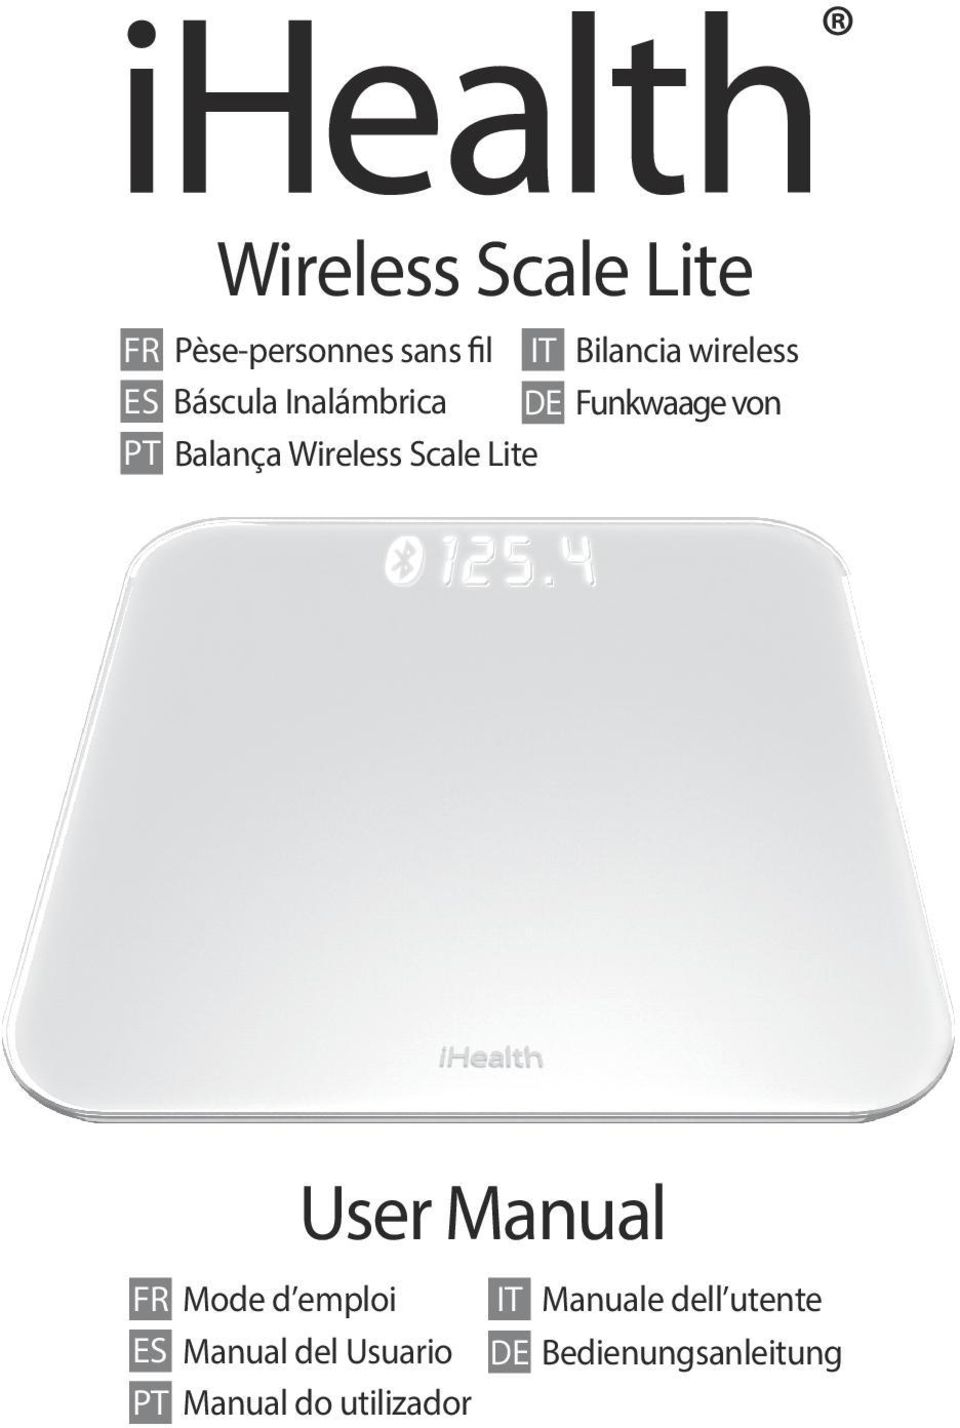 Wireless Scale Lite User Manual FR Mode d emploi ES Manual del